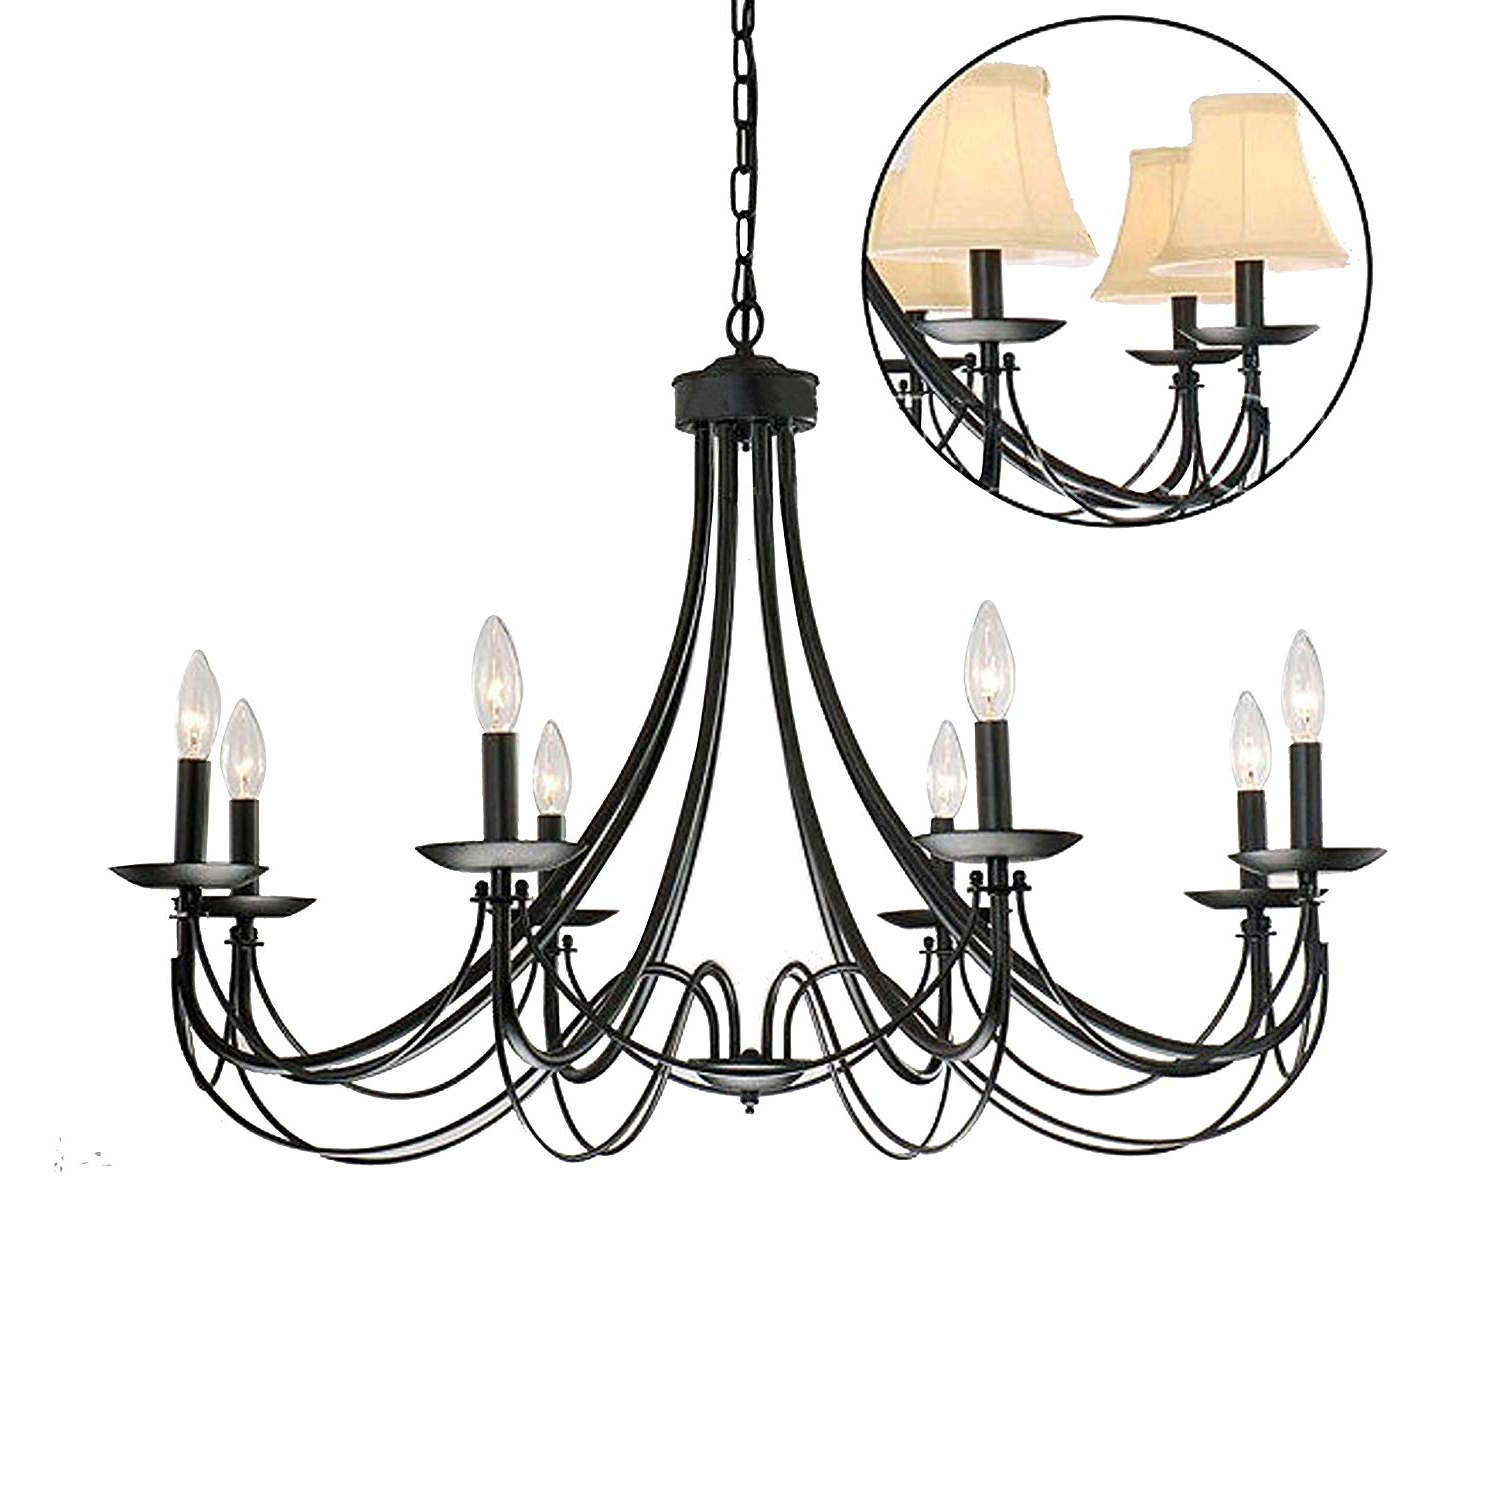 Widely Used Shaylee 6 Light Candle Style Chandeliers Regarding Iron 8 Light Black Chandelier (View 25 of 25)